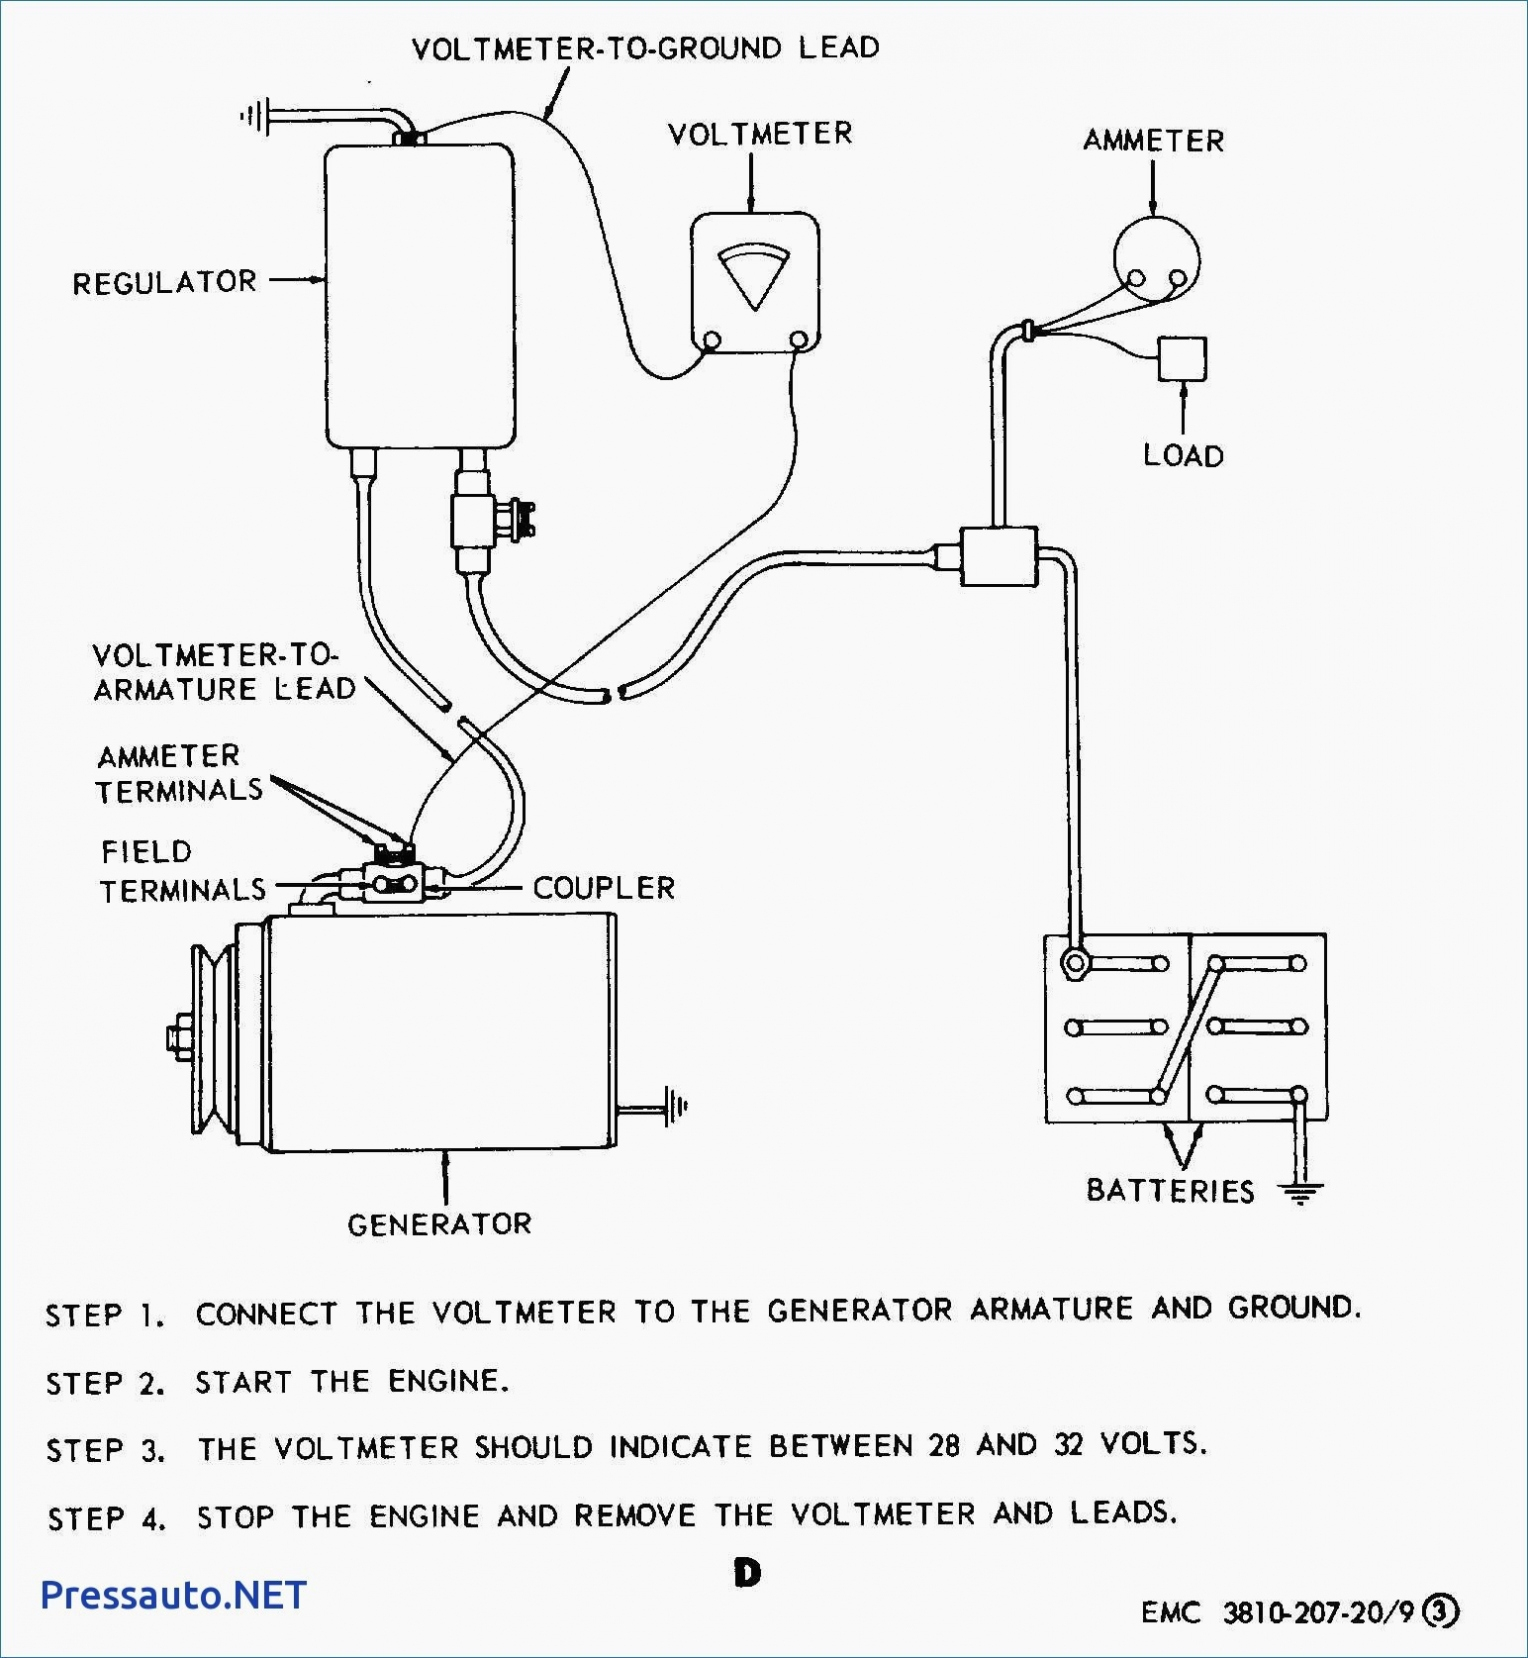 Three Wire Alternator Wiring Diagram Gm Valid Gm Alternator Wiring - Gm Alternator Wiring Diagram Internal Regulator